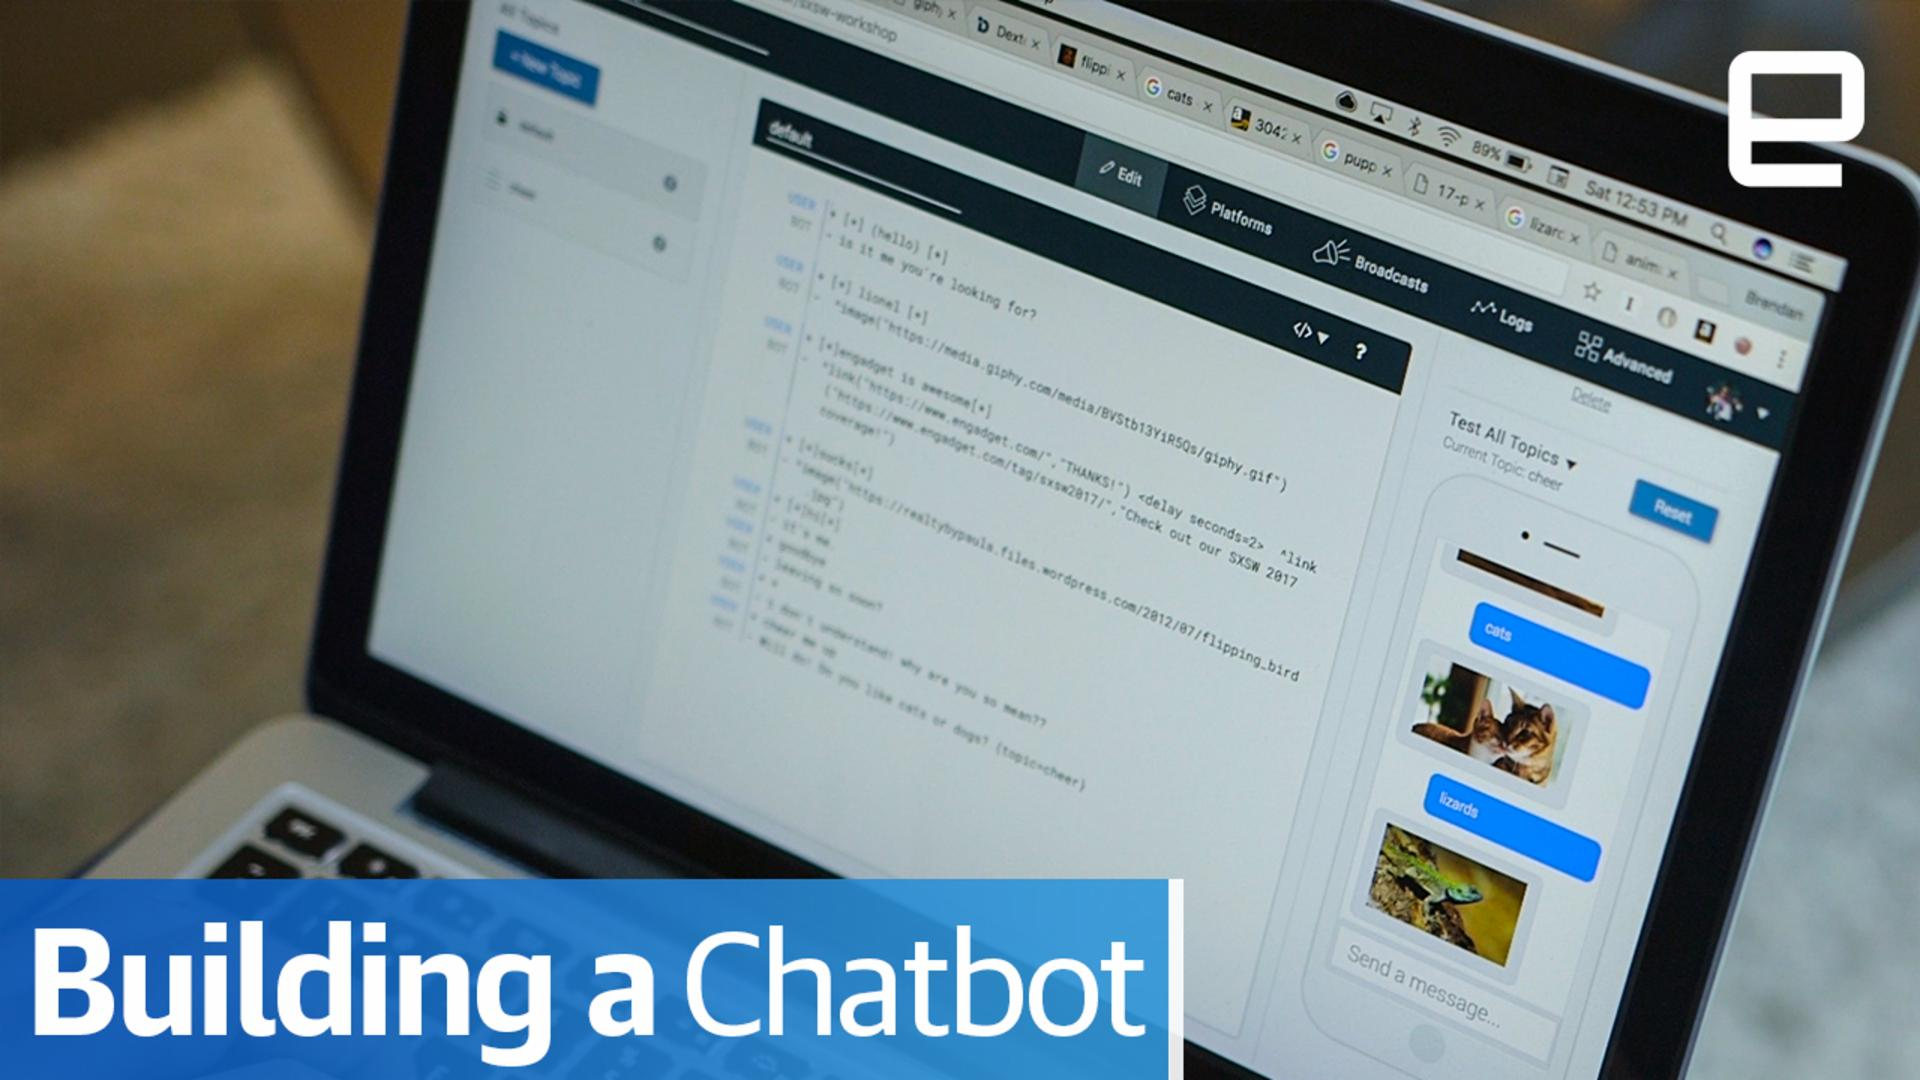 Building your own chatbot is a lot easier than you'd expect